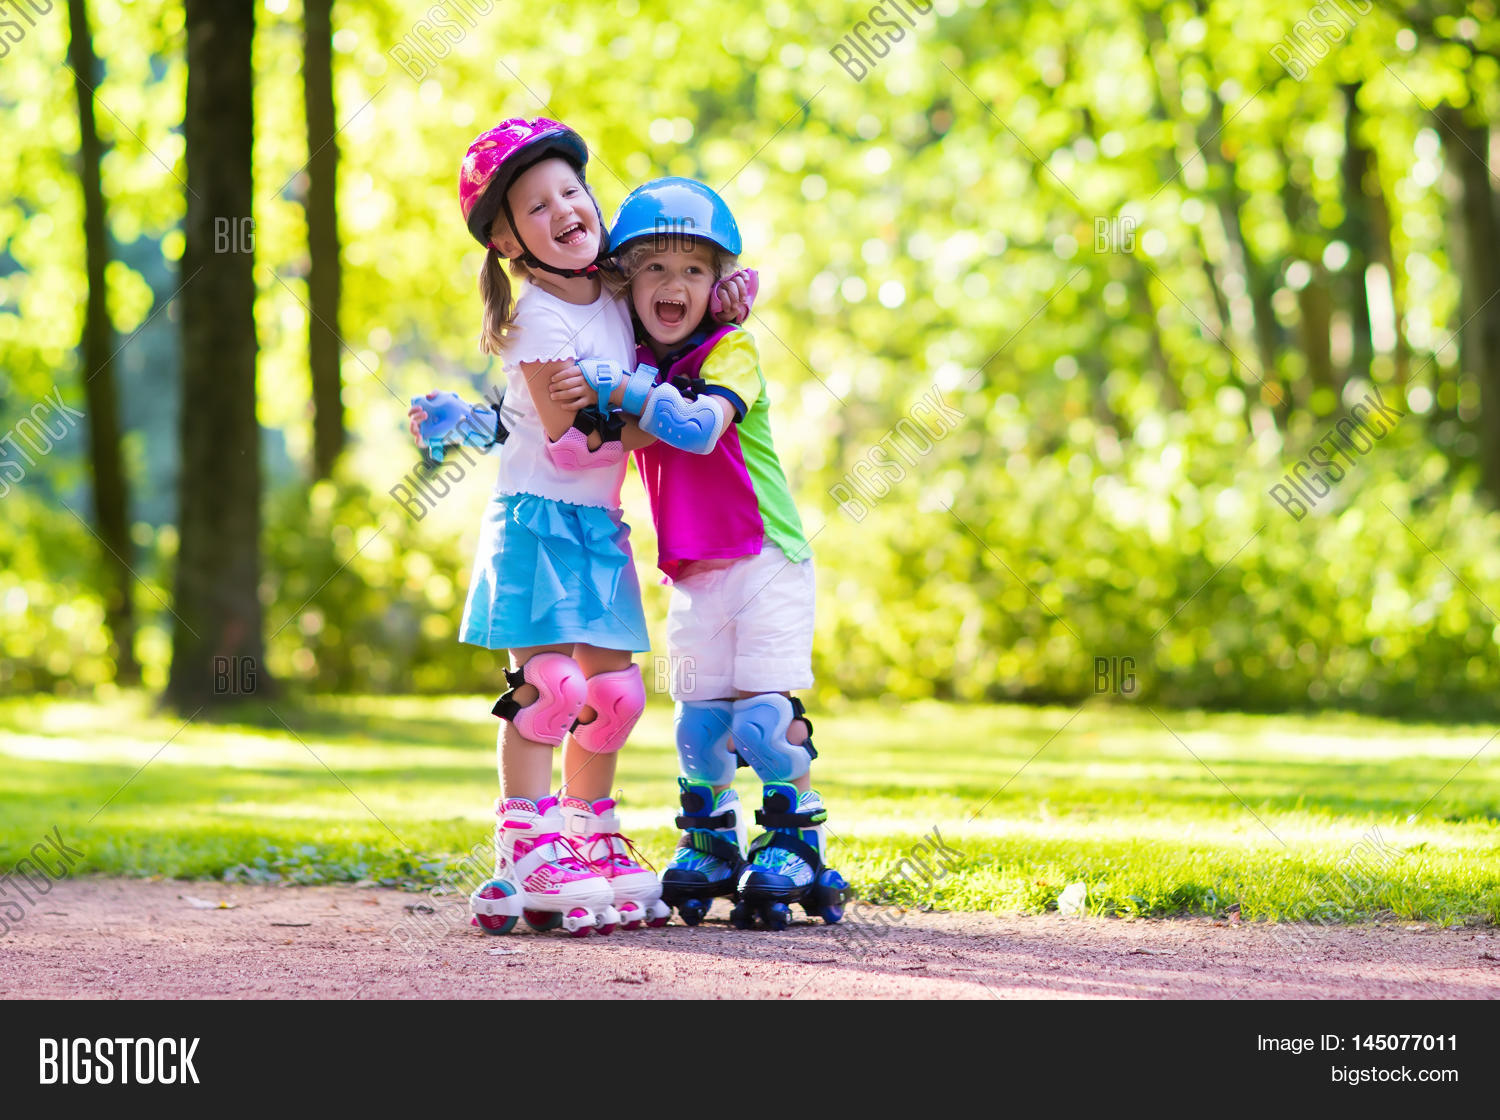 Roller skates boy